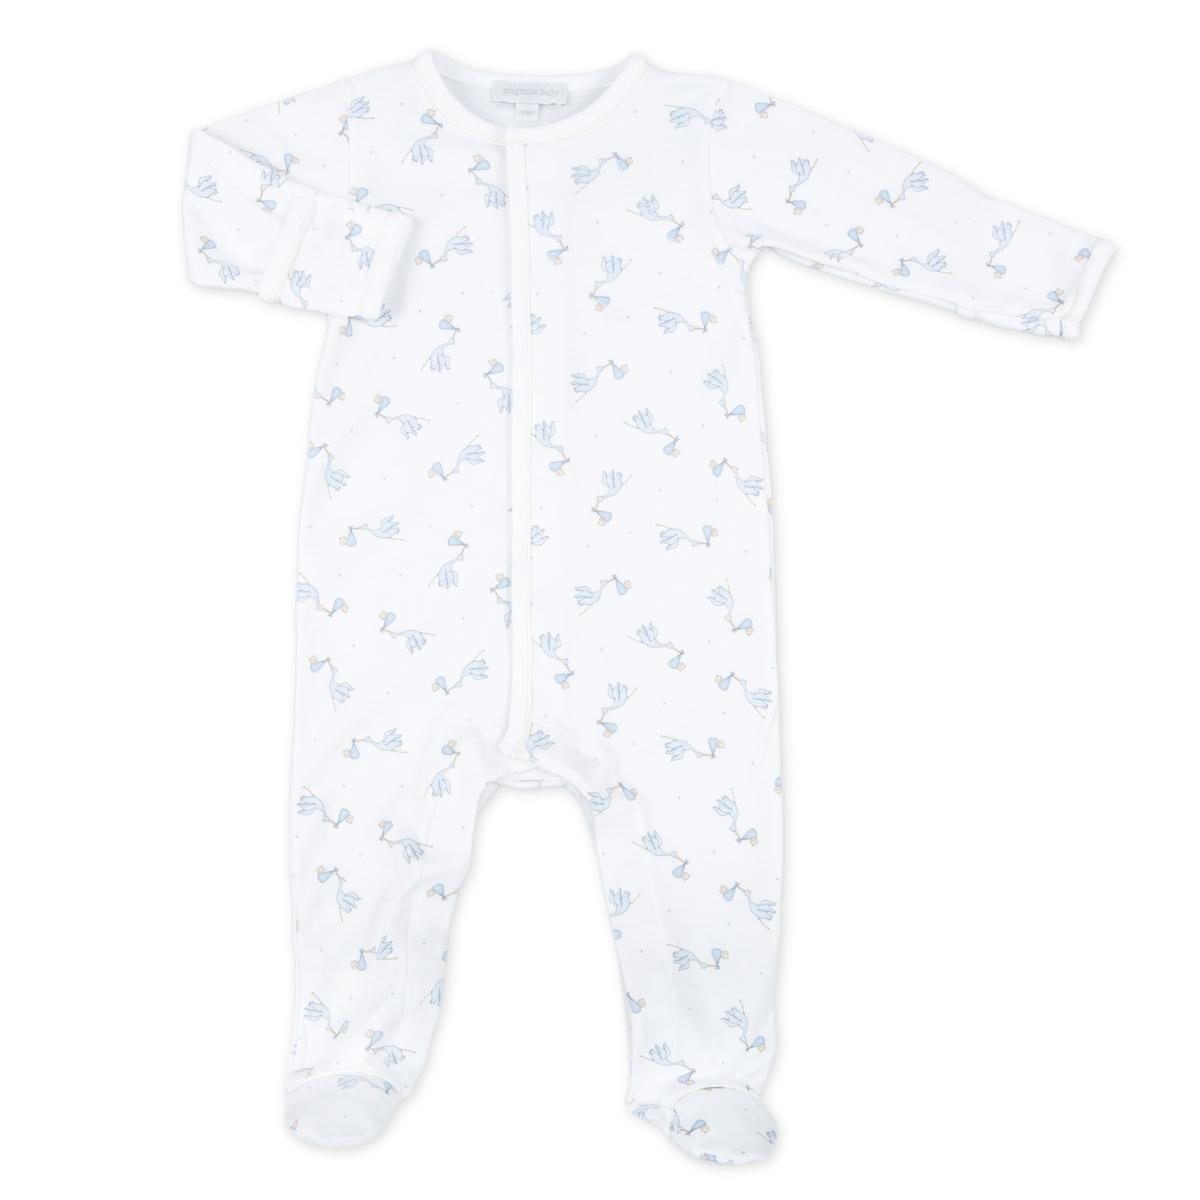 Blue Worth the Wait Printed Babygrow - Chic Petit